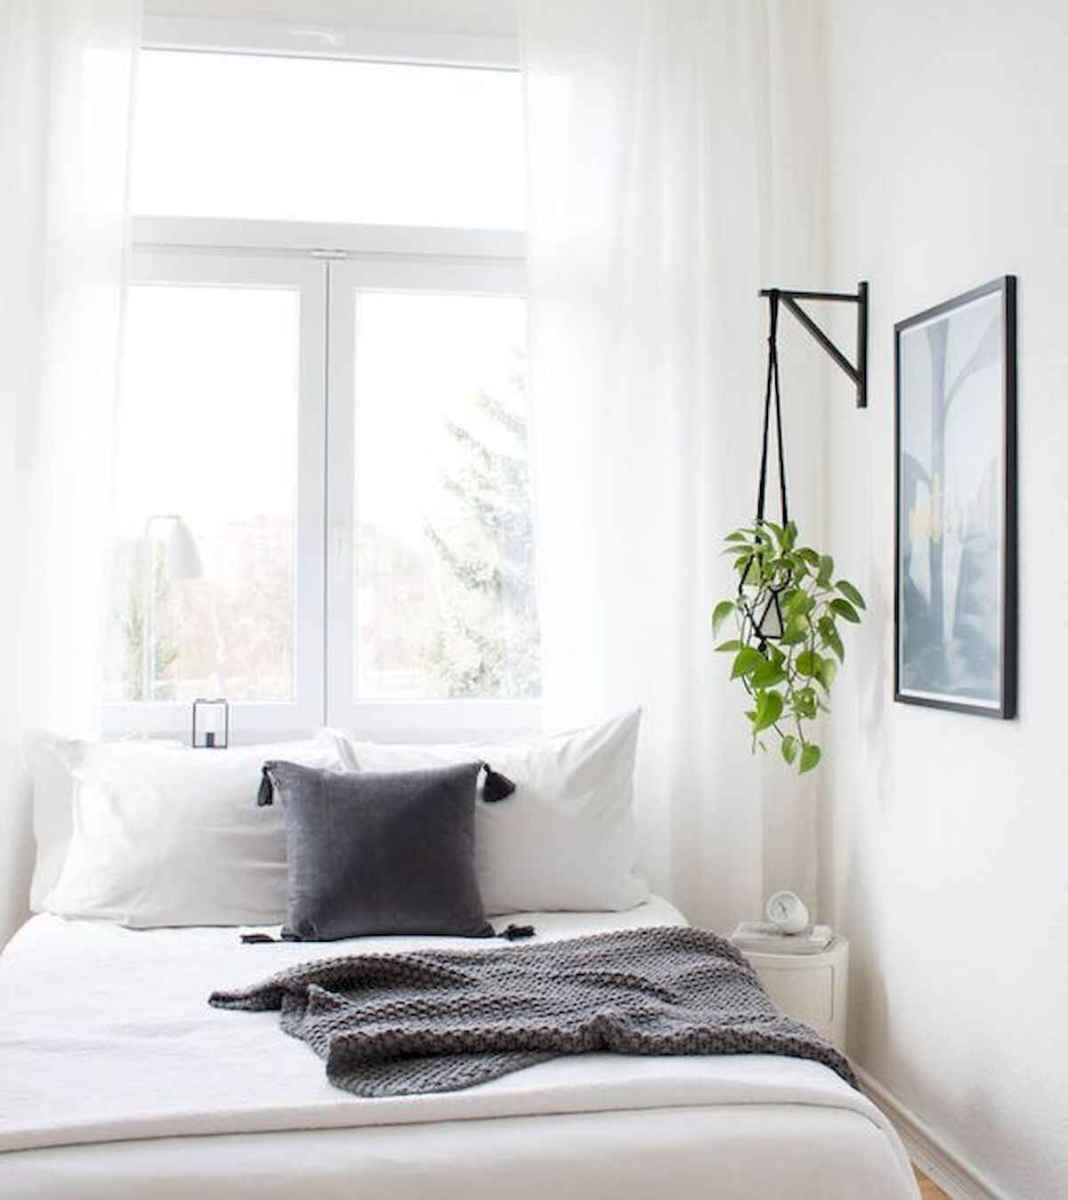 50 Stunning Small Apartment Bedroom Design Ideas and Decor (6)